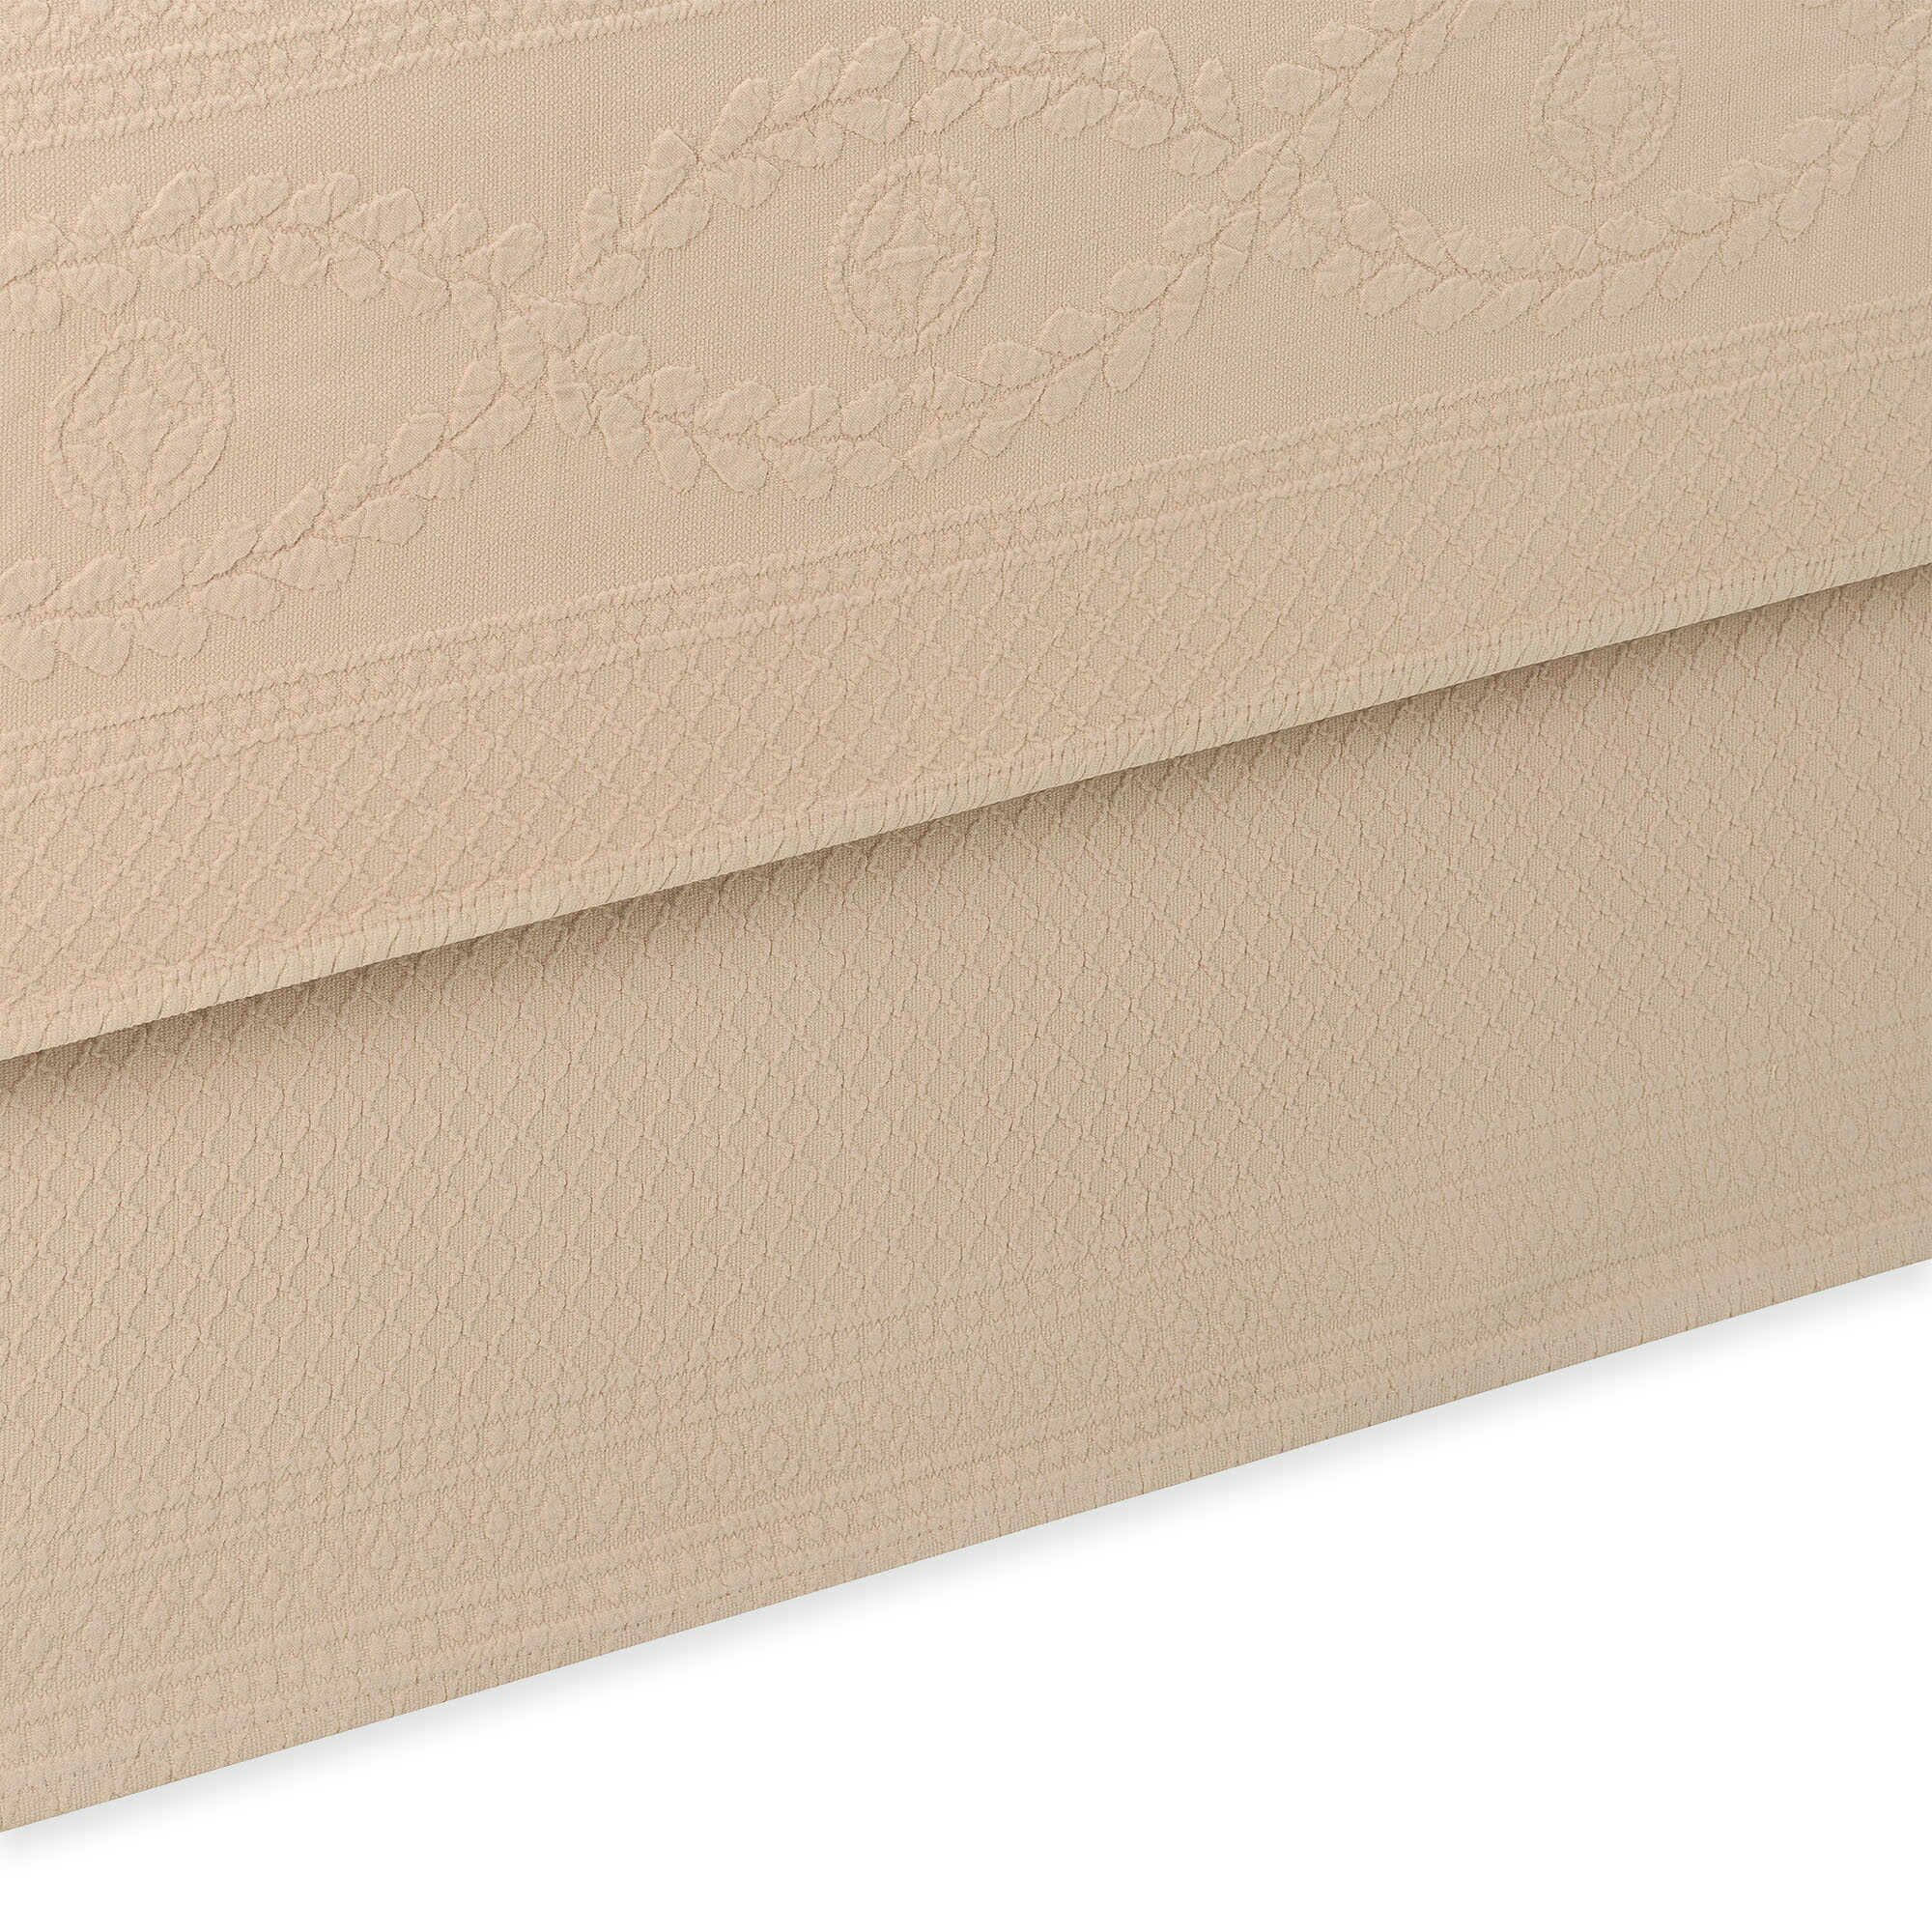 Williamsburg Abby Bed Skirt Color: Linen, Size: Full/Double